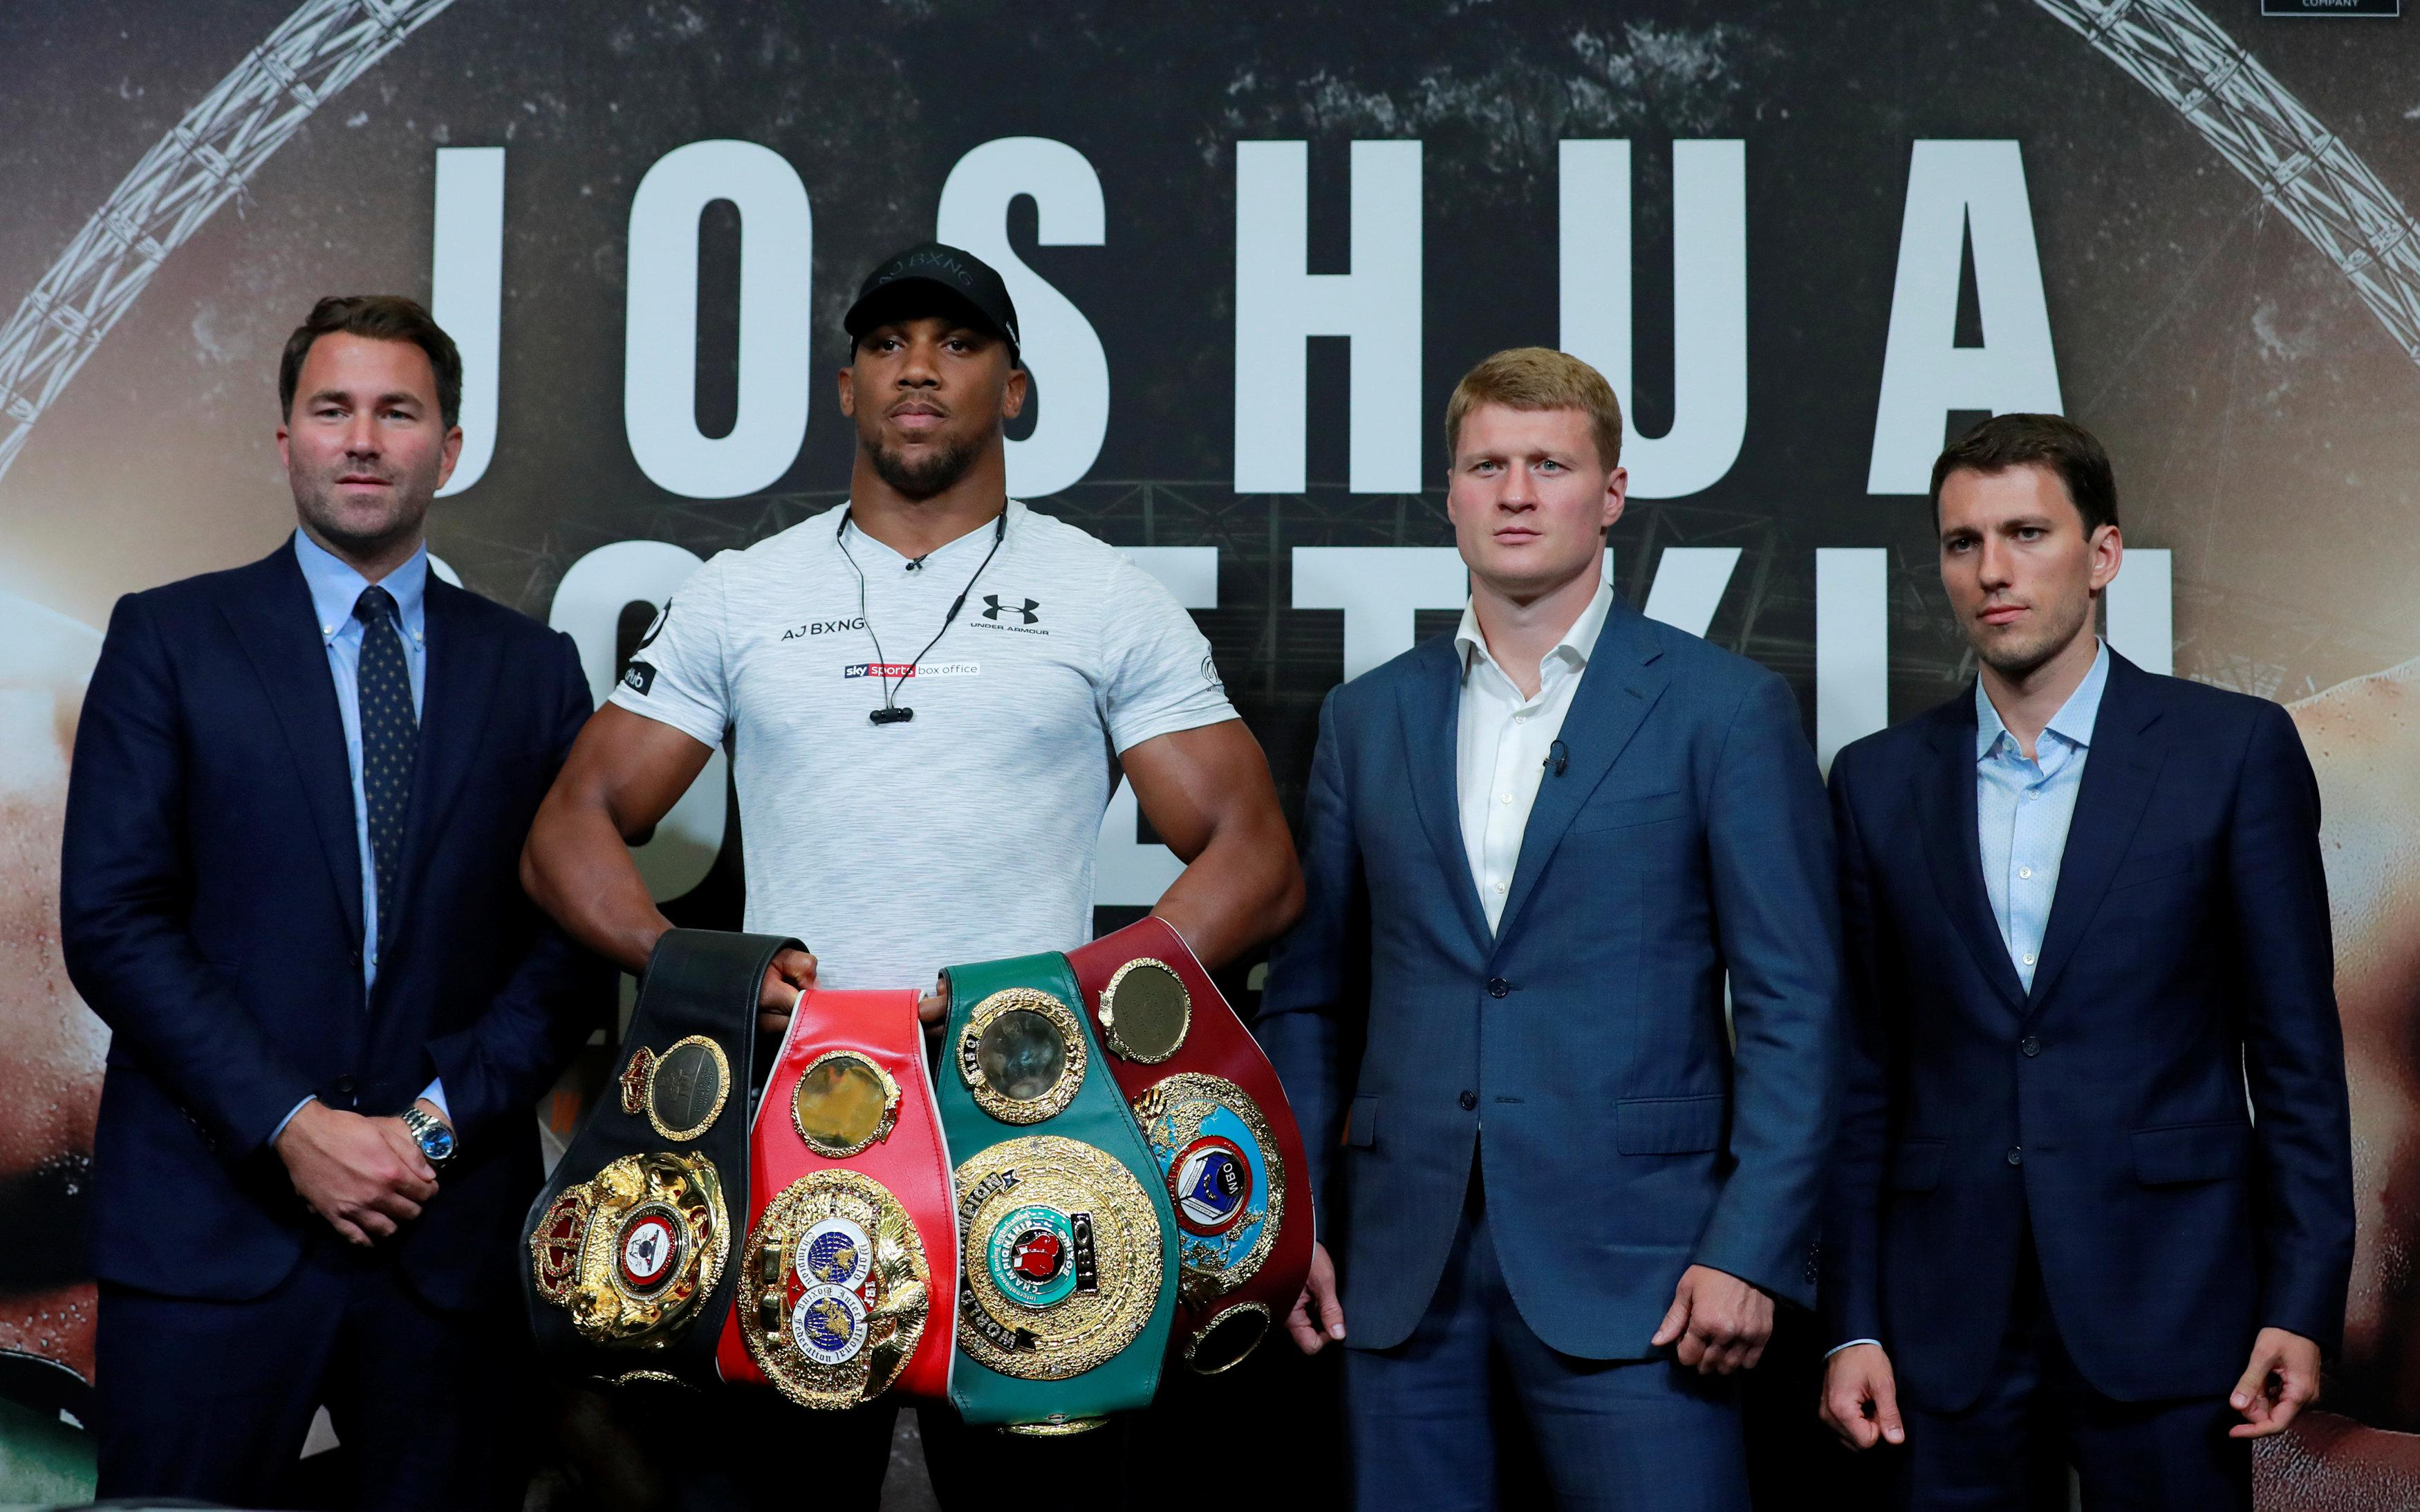 Joshua was expected to have a unification fight with Wilder but must take on Alexander Povetkin as the WBA's mandatory challenger